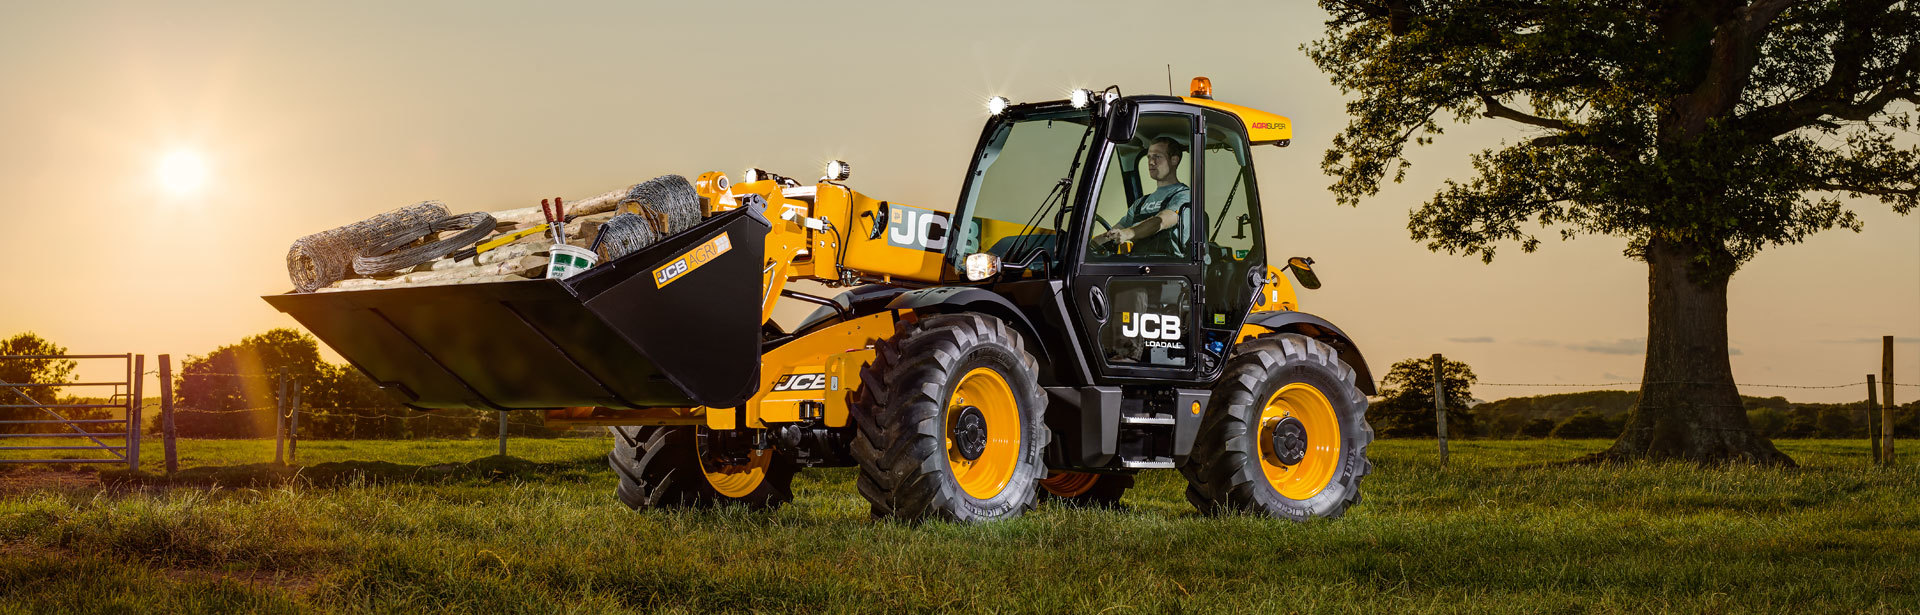 hight resolution of wiring diagram for jcb forklift